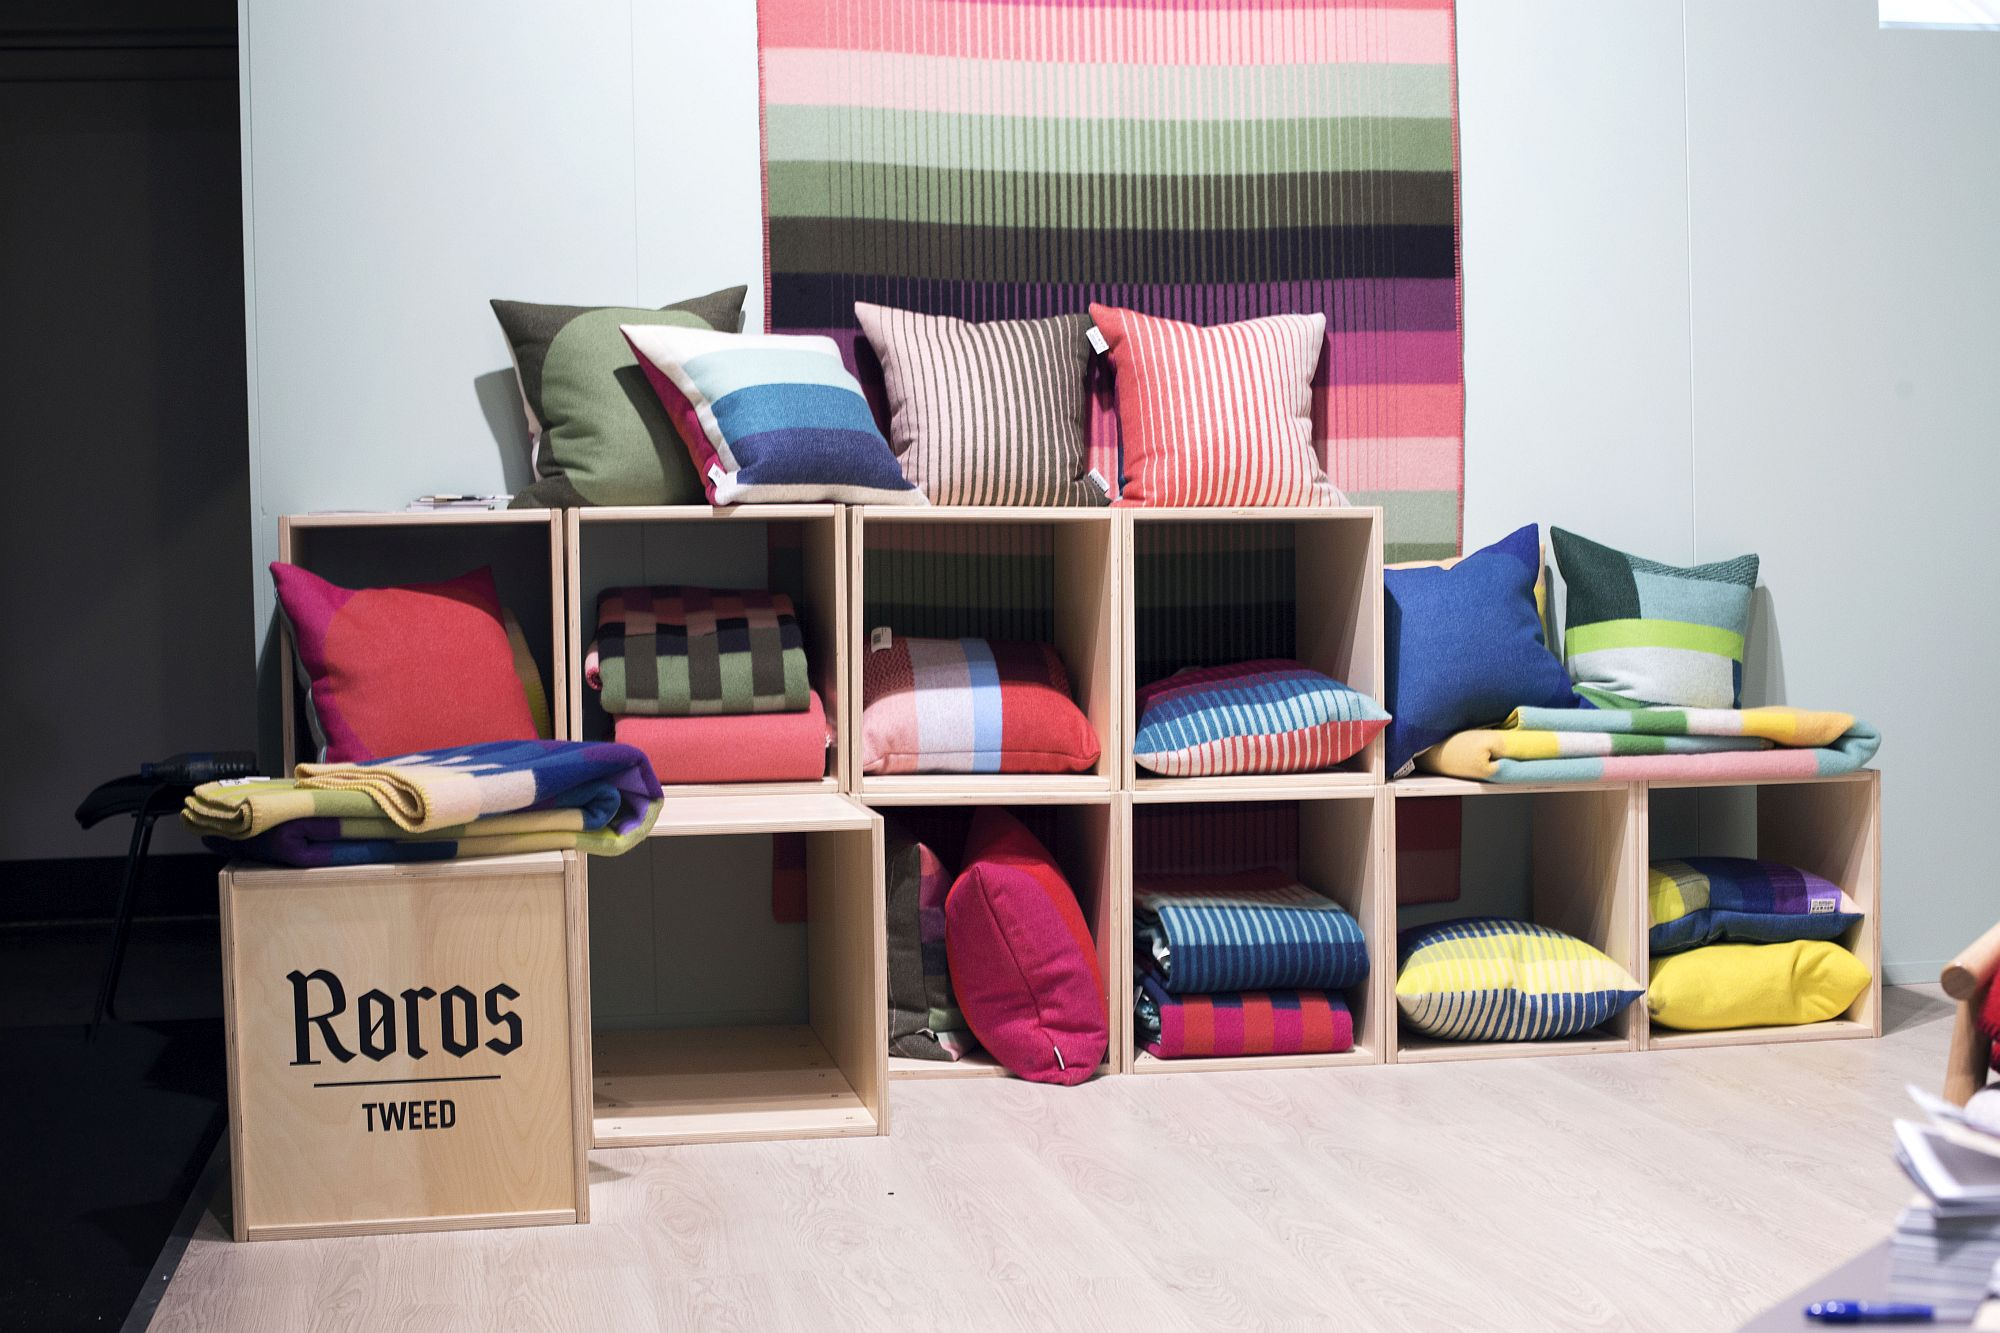 Luxurious-and-colorful-textile-display-from-Røros-Tweed-at-IMM-Cologne-2017